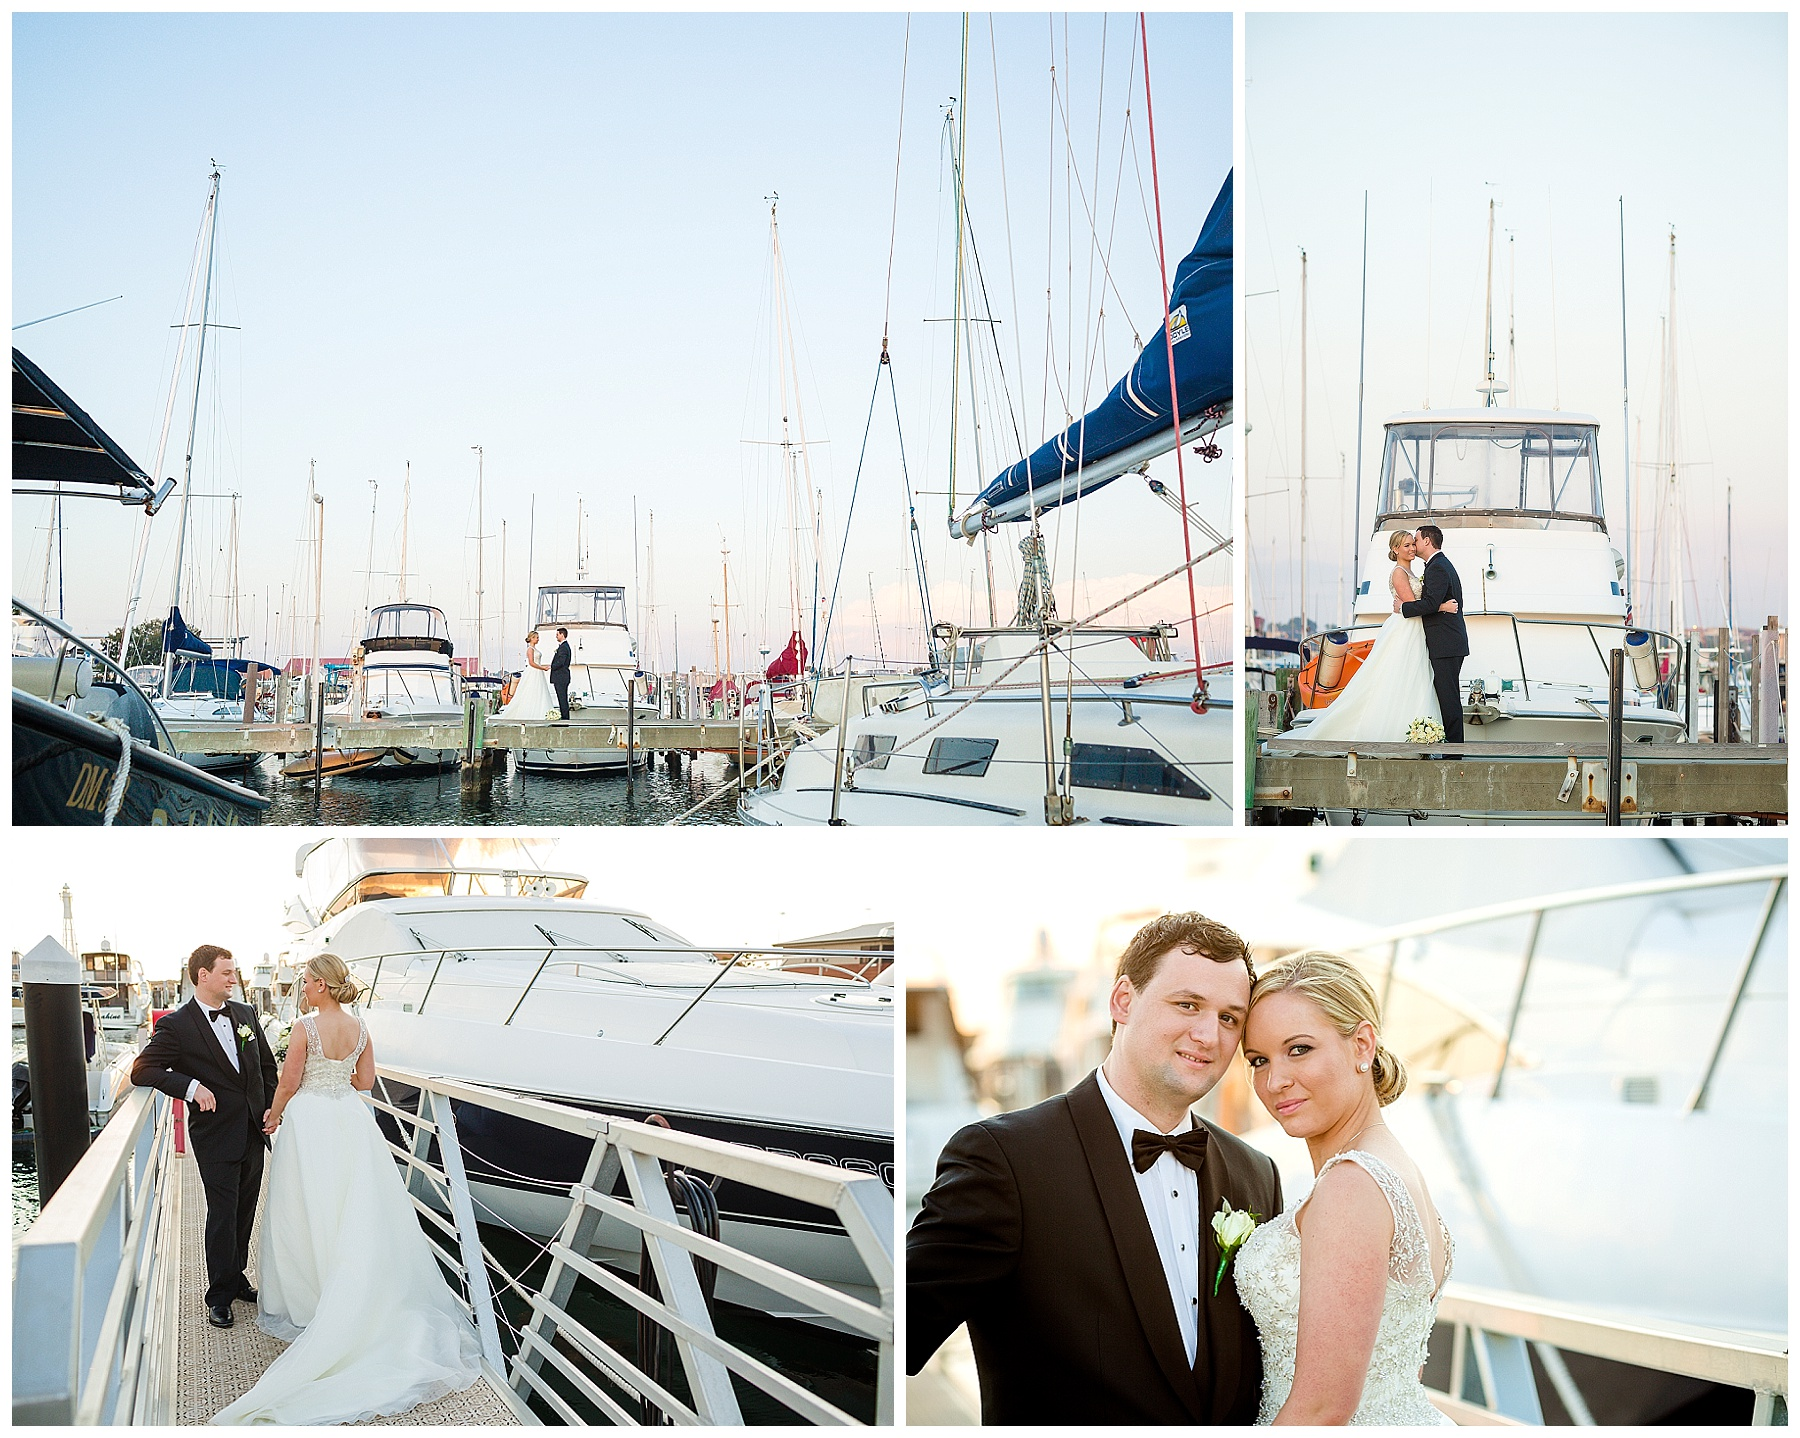 Hillarys Yacht Club Wedding, wedding ceremony on the boardwalk and wedding reception in the Harbour Room. Images by Perth Wedding Photographer Compose